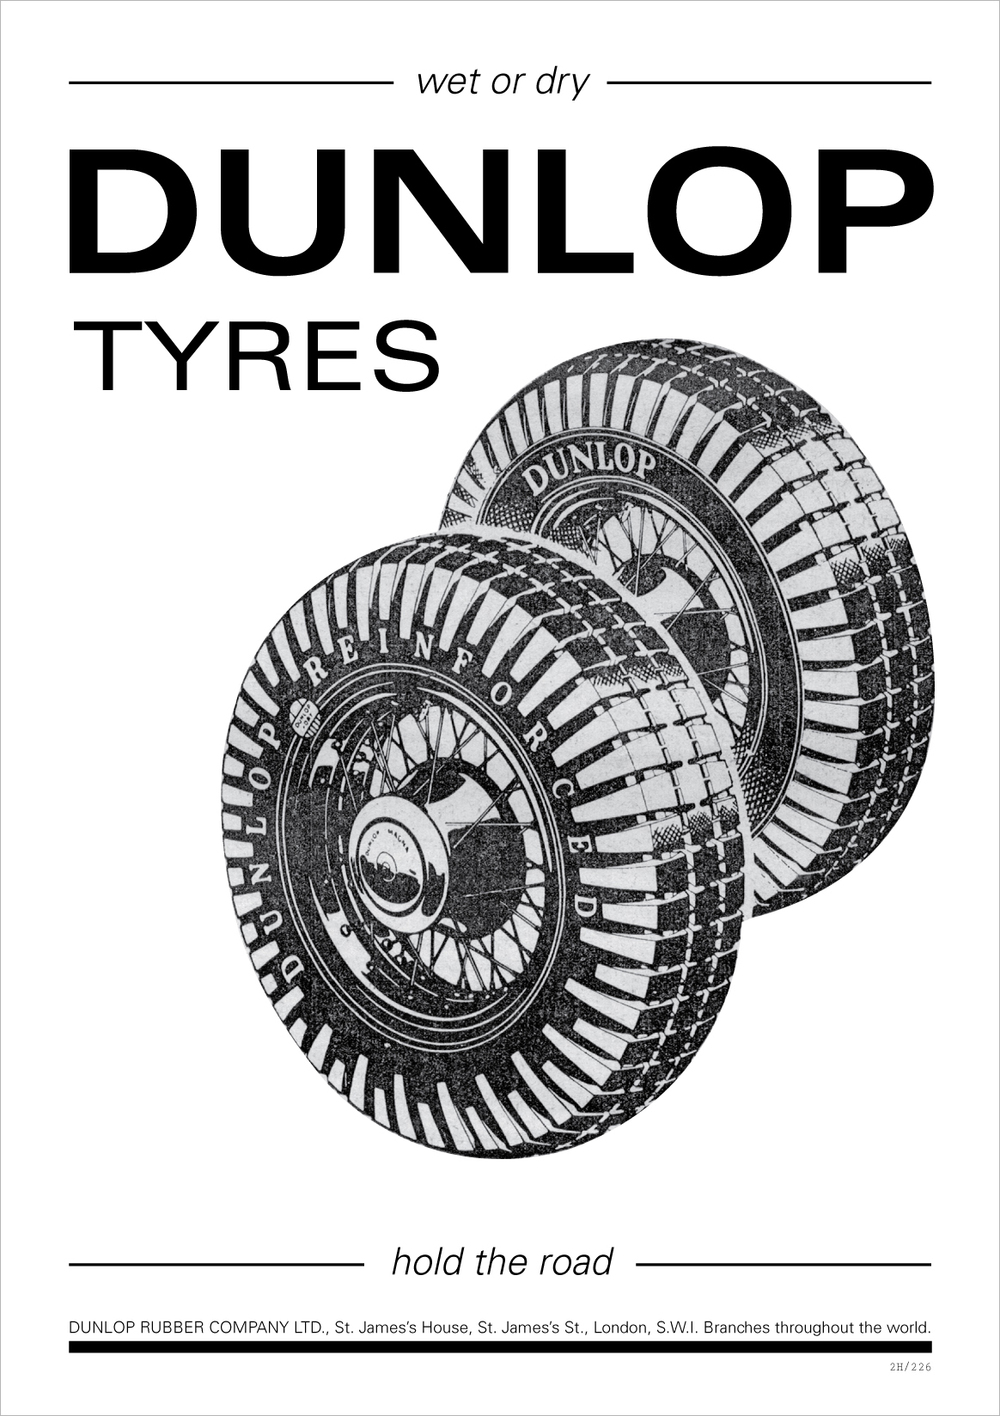 July 30: I really like the original Dunlop Tyres ad, but the type hierarchy and font choice weren't quite working for me, so I decided to rework it.